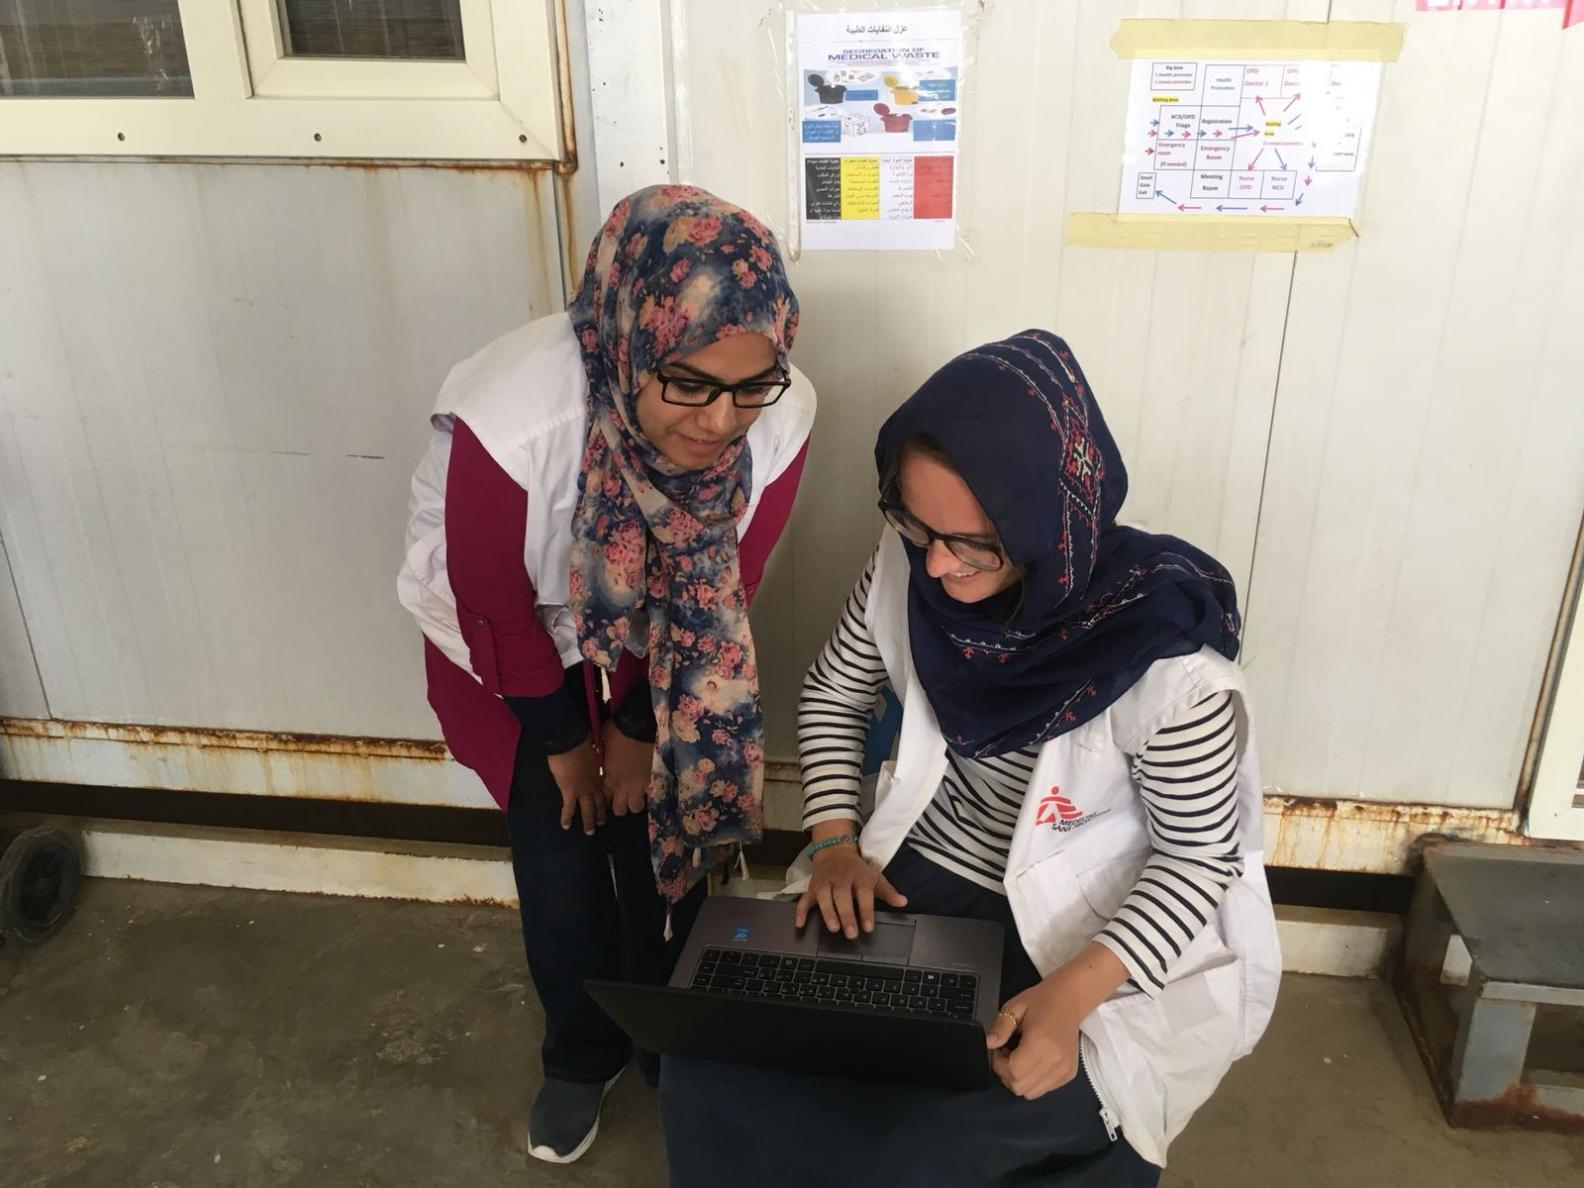 An MSF epidemiologist and health promoter look at a laptop together